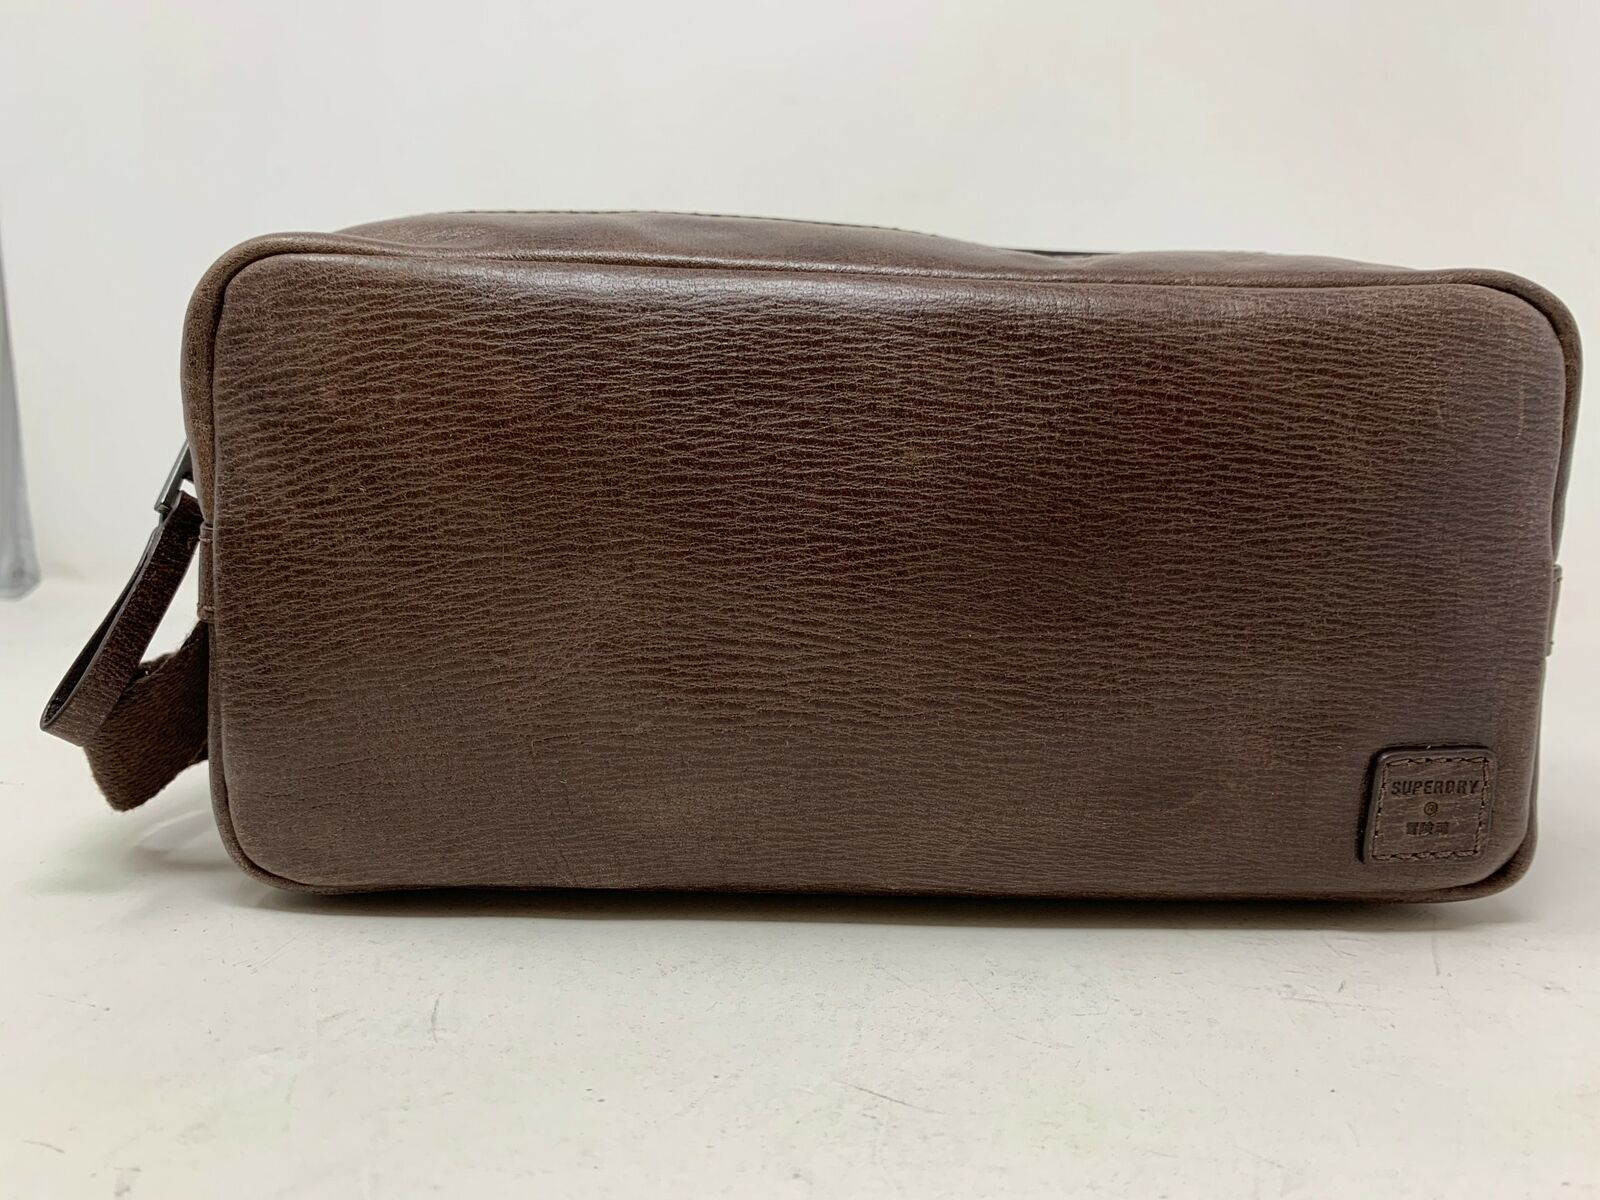 SUPERDRY Leather Bag Brown NEW